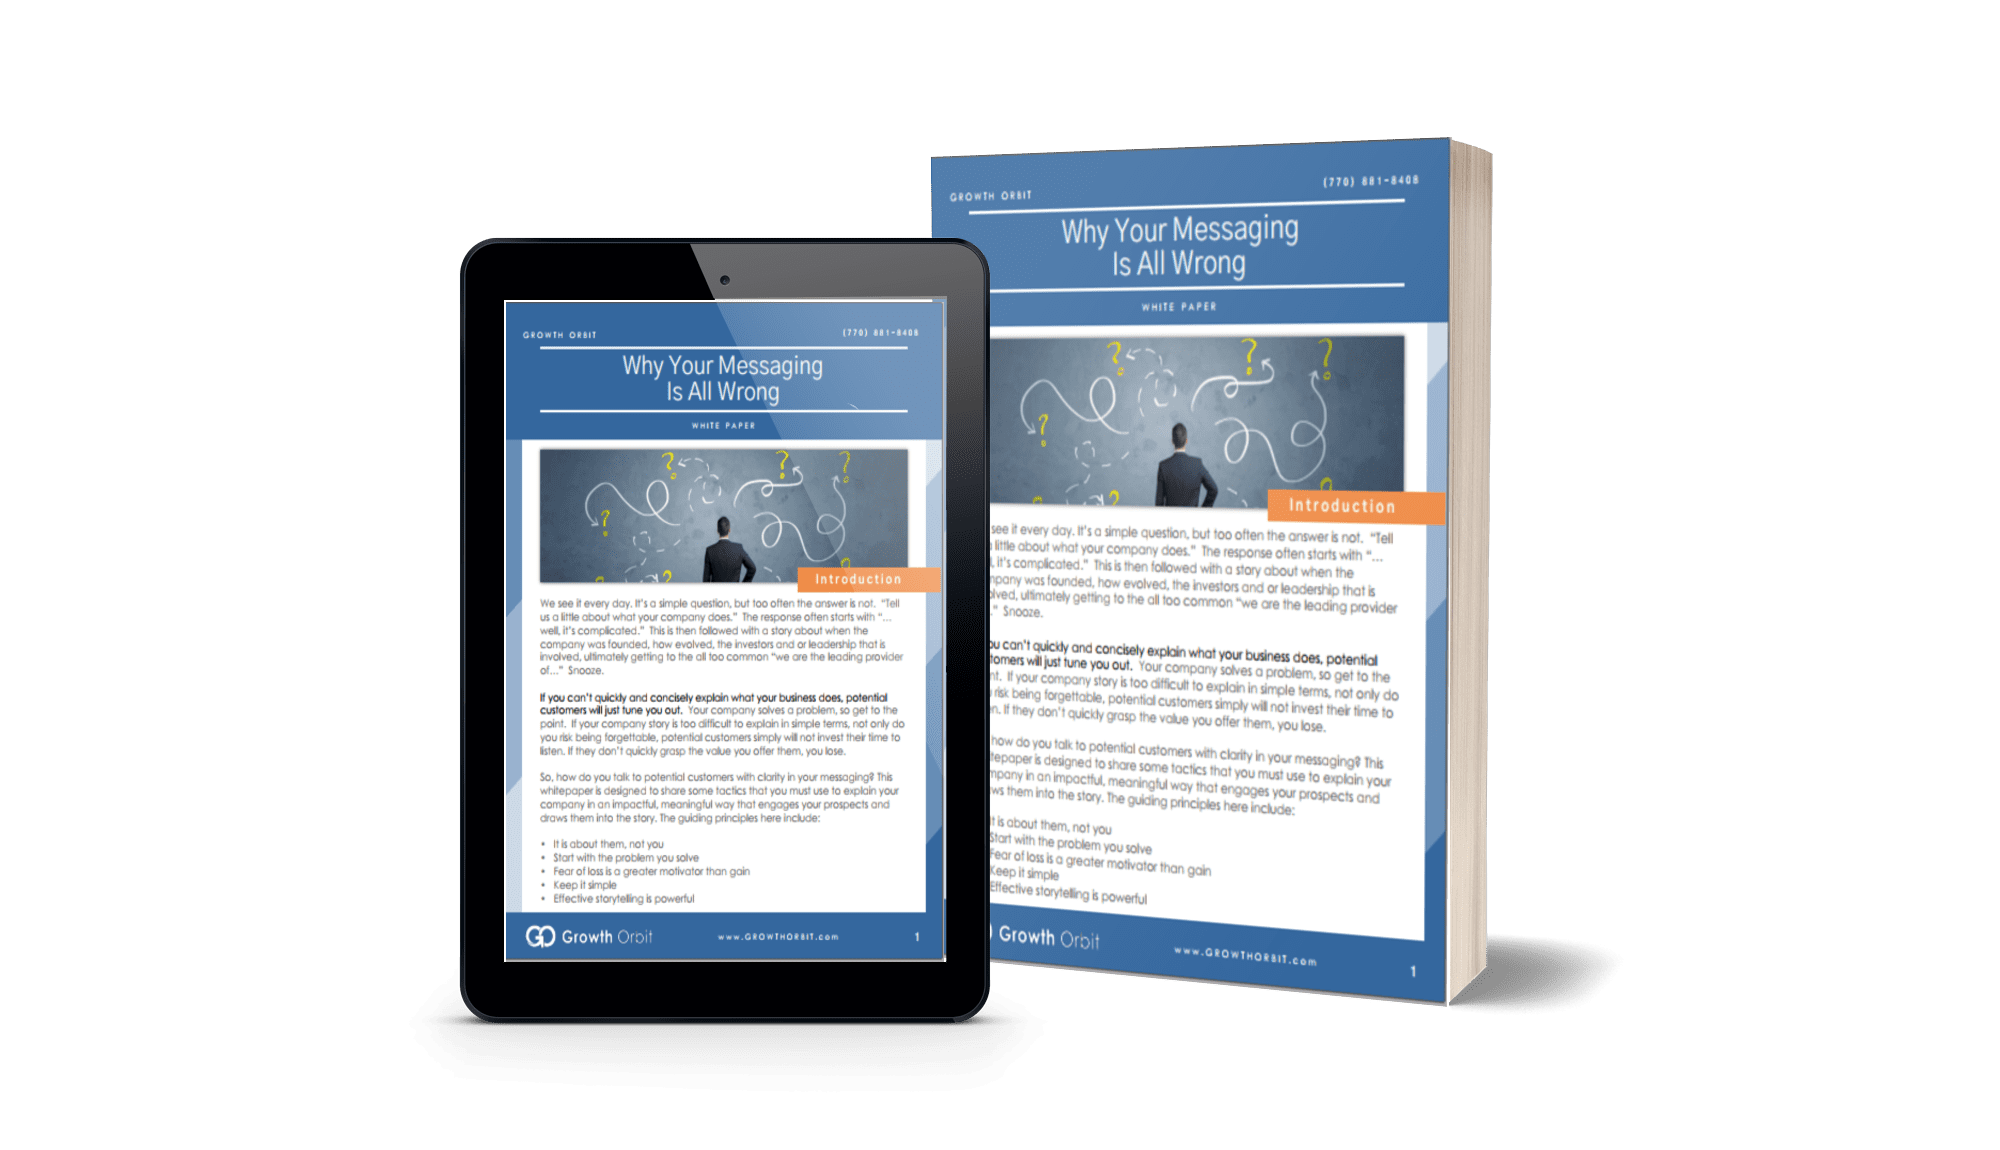 Why Your Messaging is All Wrong White Paper by Growth Orbit